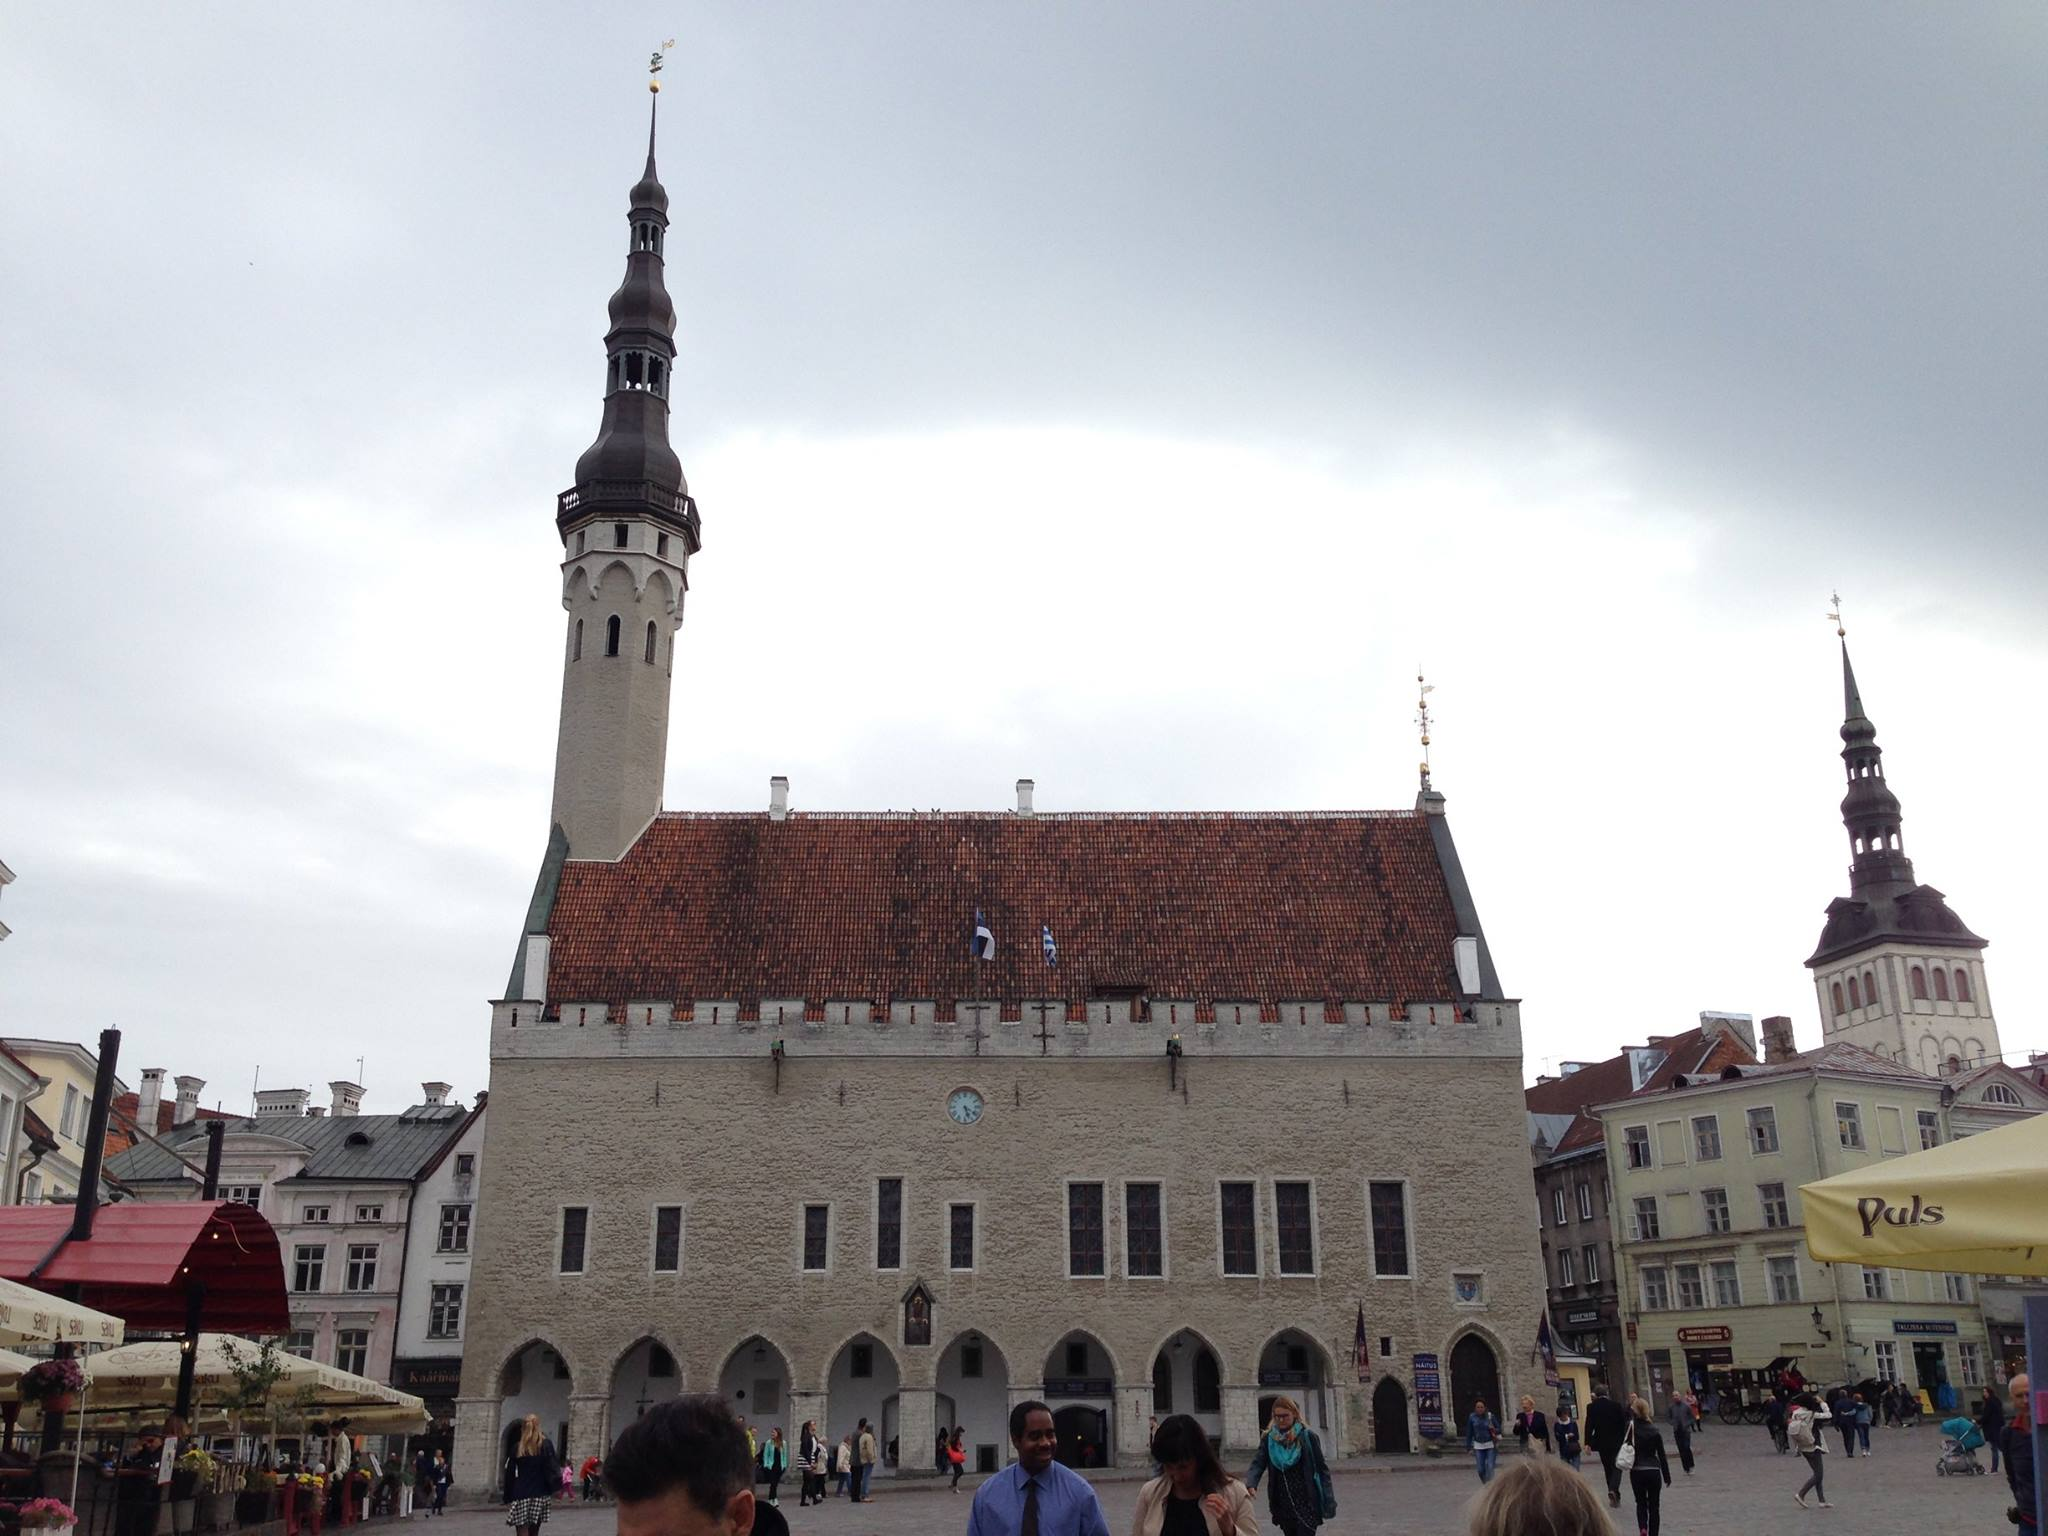 A weather vane featuring Vana Toomas sits atop the tower of Tallinn Town Hall.